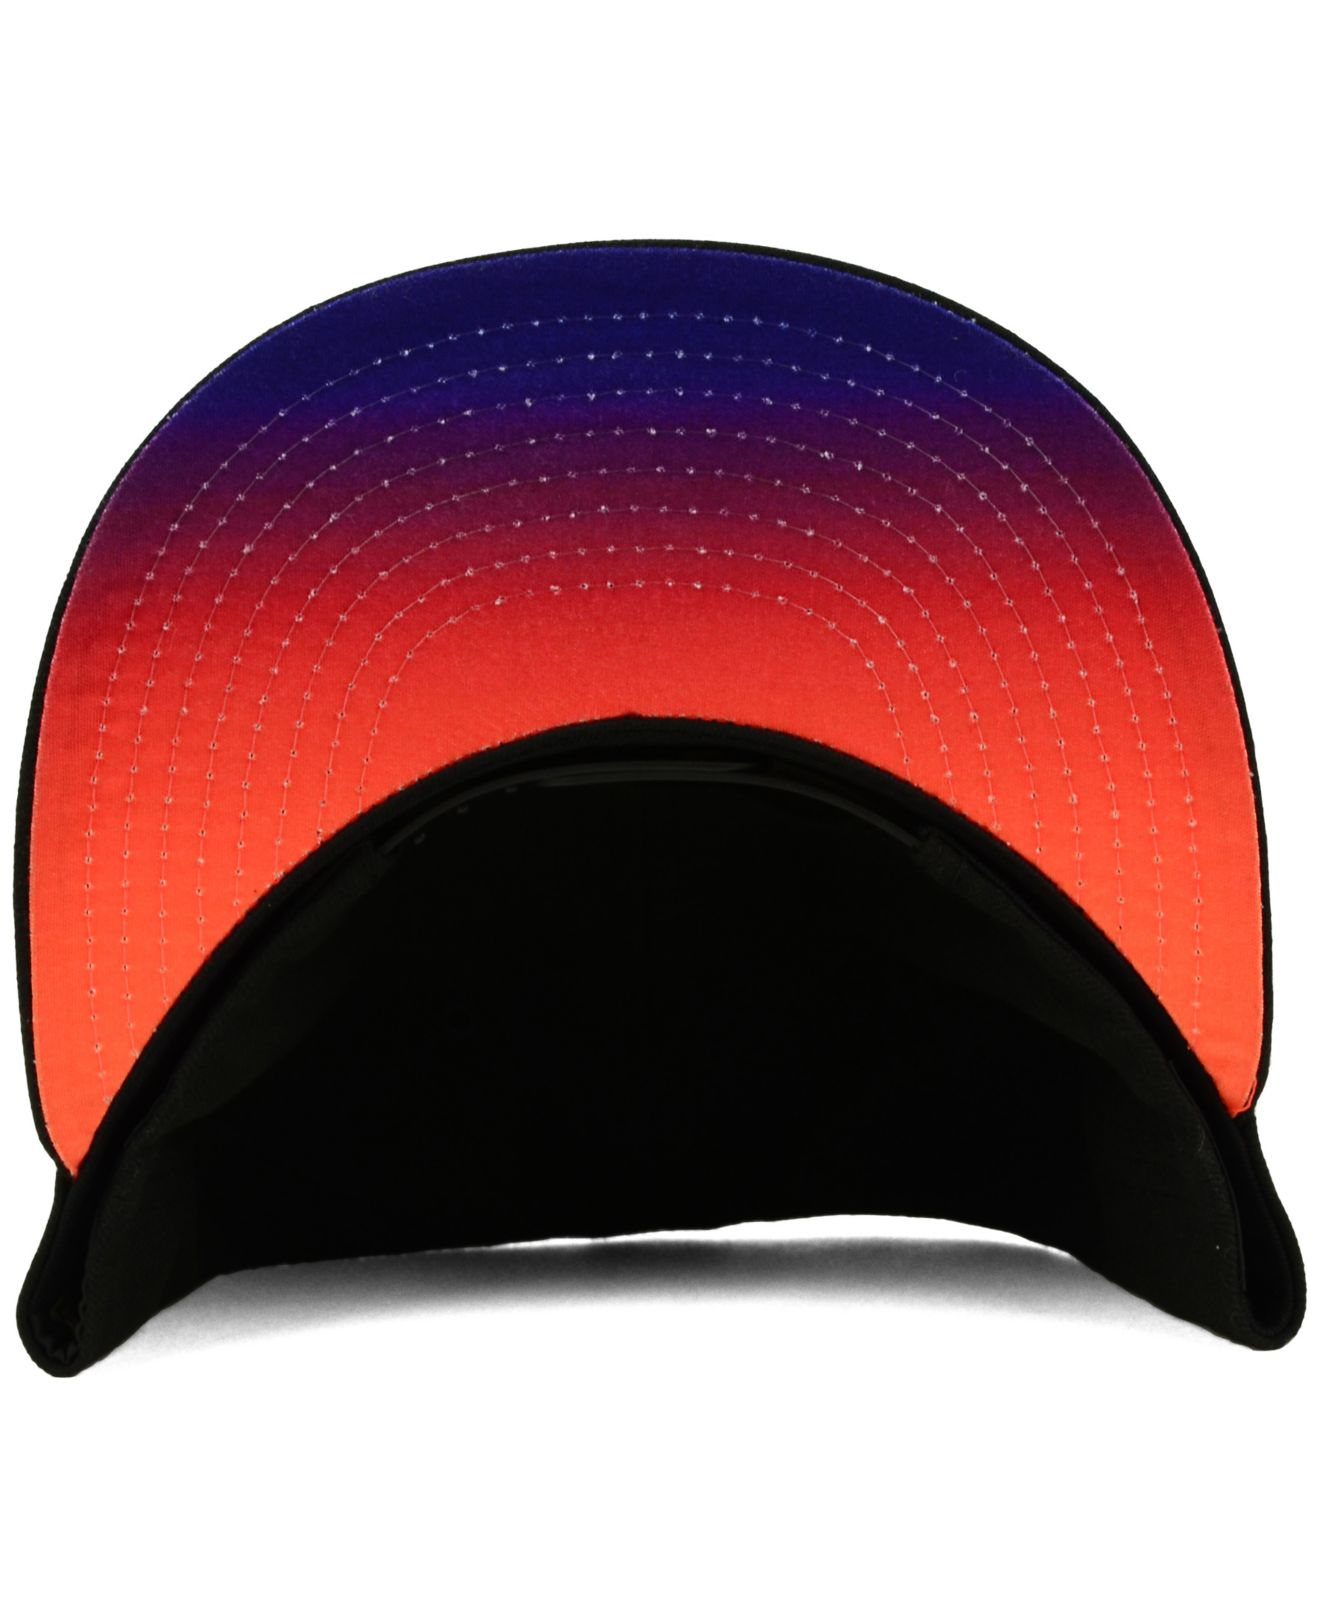 super popular 0a389 0d0ae ... inexpensive lyst ktz phoenix suns fade to script 9fifty snapback cap in  black fc1af 9459c